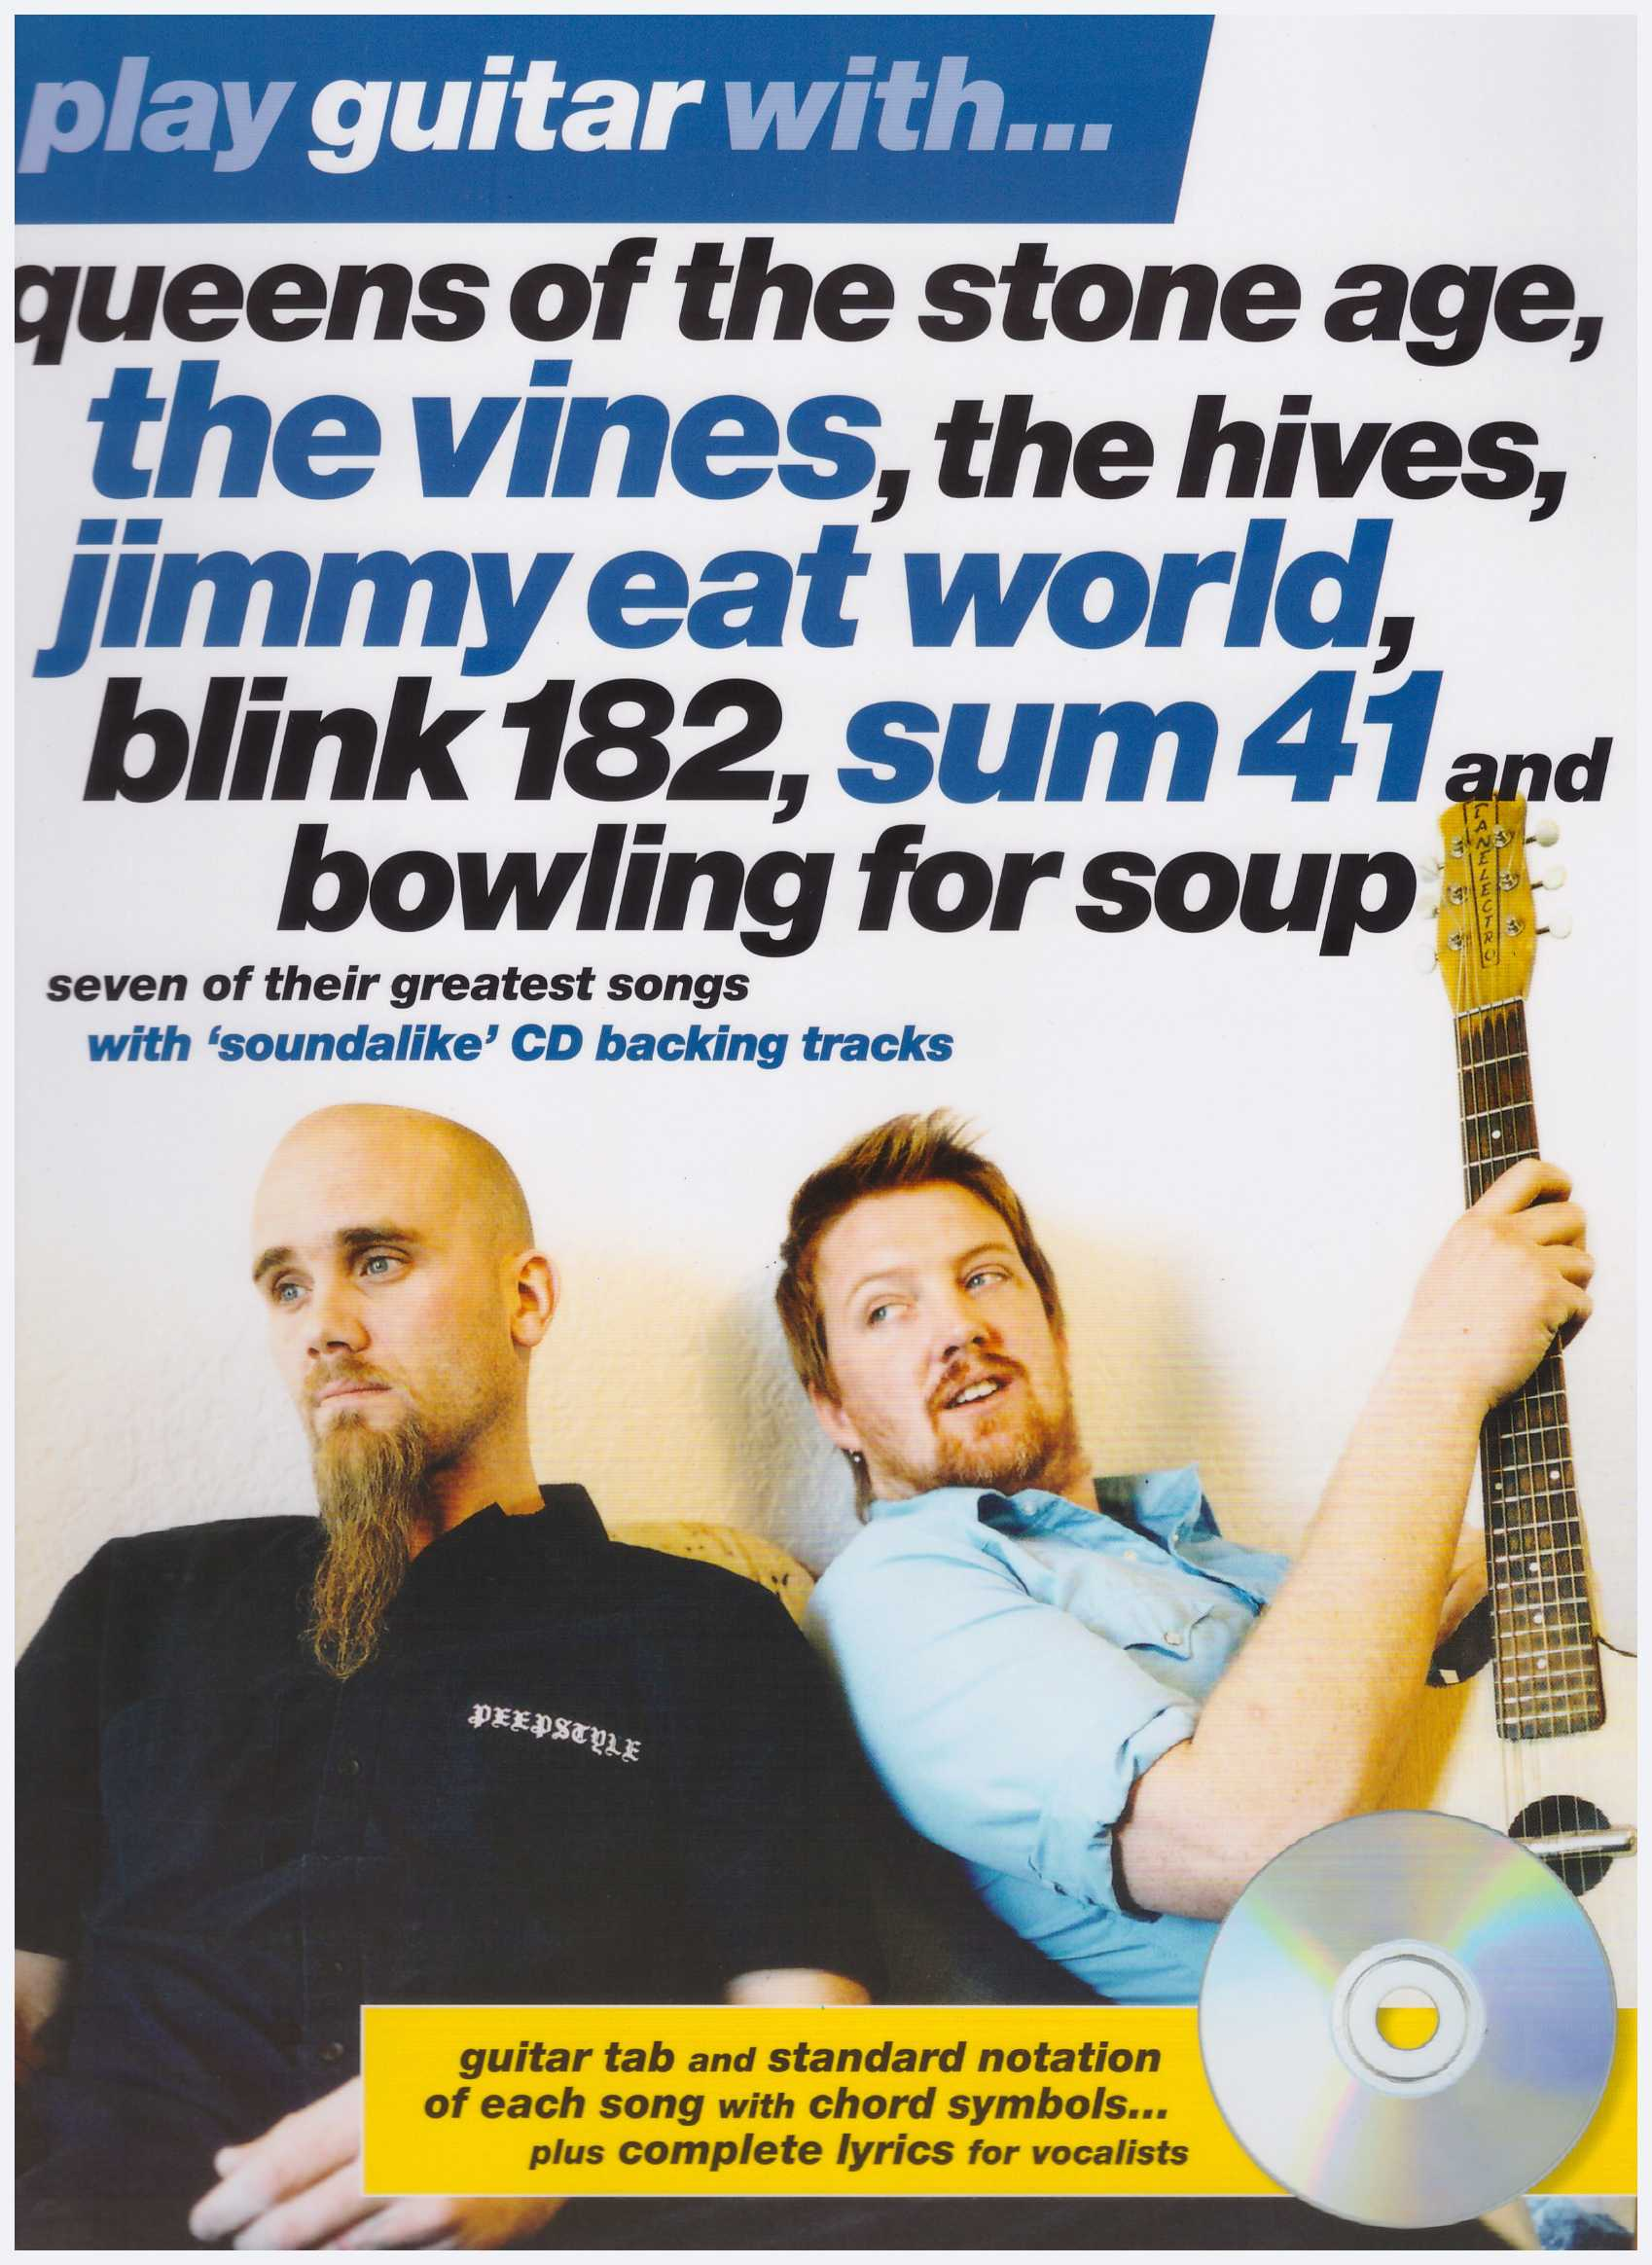 Play Guitar With. Queens Of The Stone Age, The Vines, The Hives, Jimmy Eat World, Blink 182, Sum 41 and Bowling For Soup